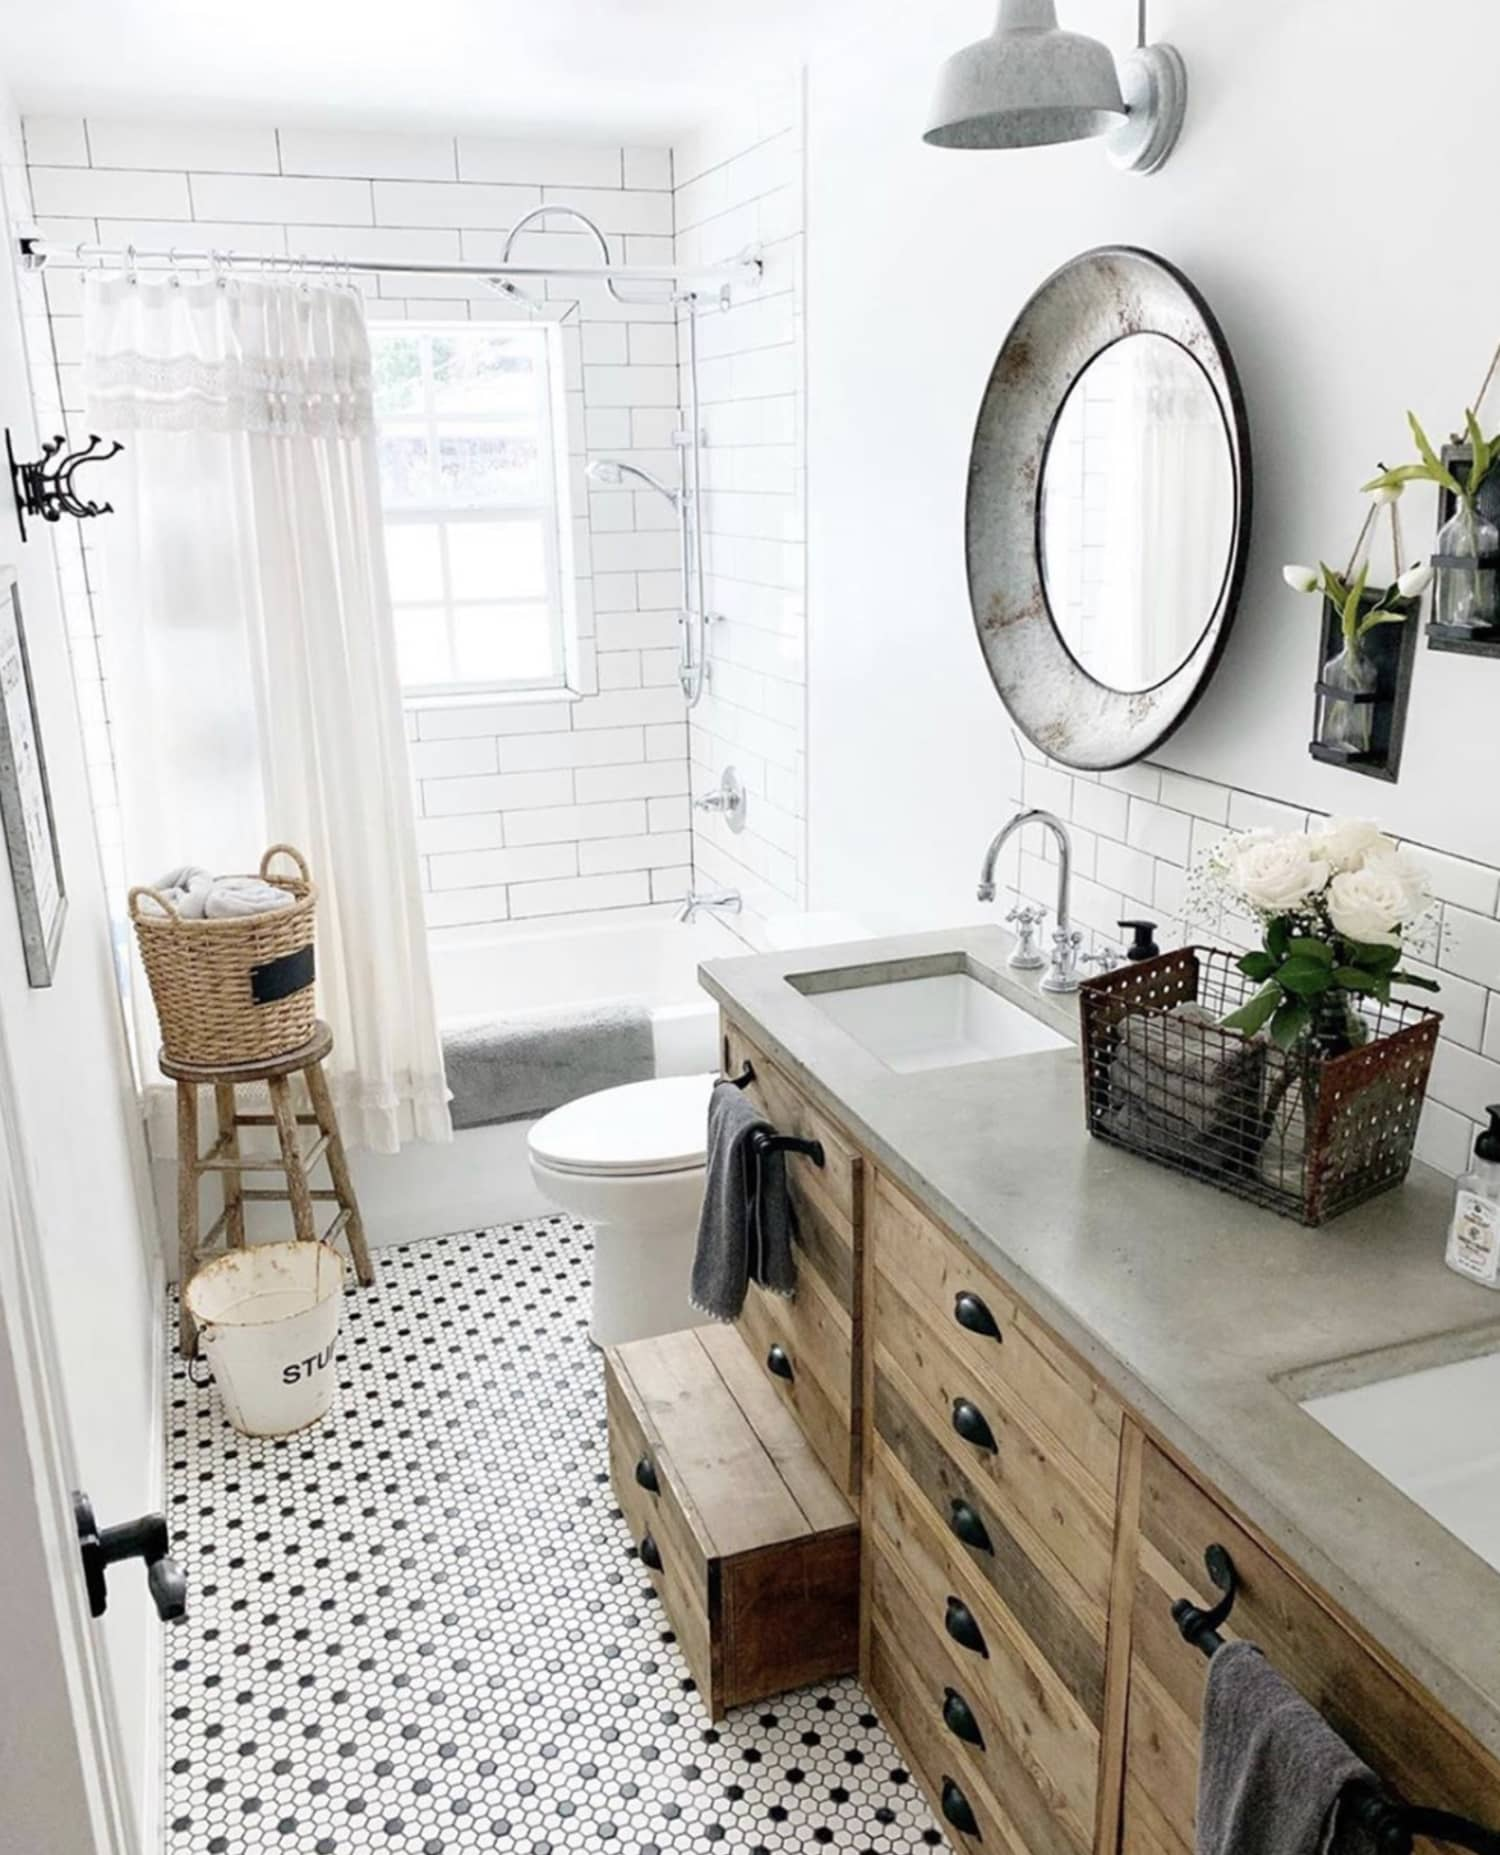 Bathroom Ideas: The Best Farmhouse Bathroom Decor